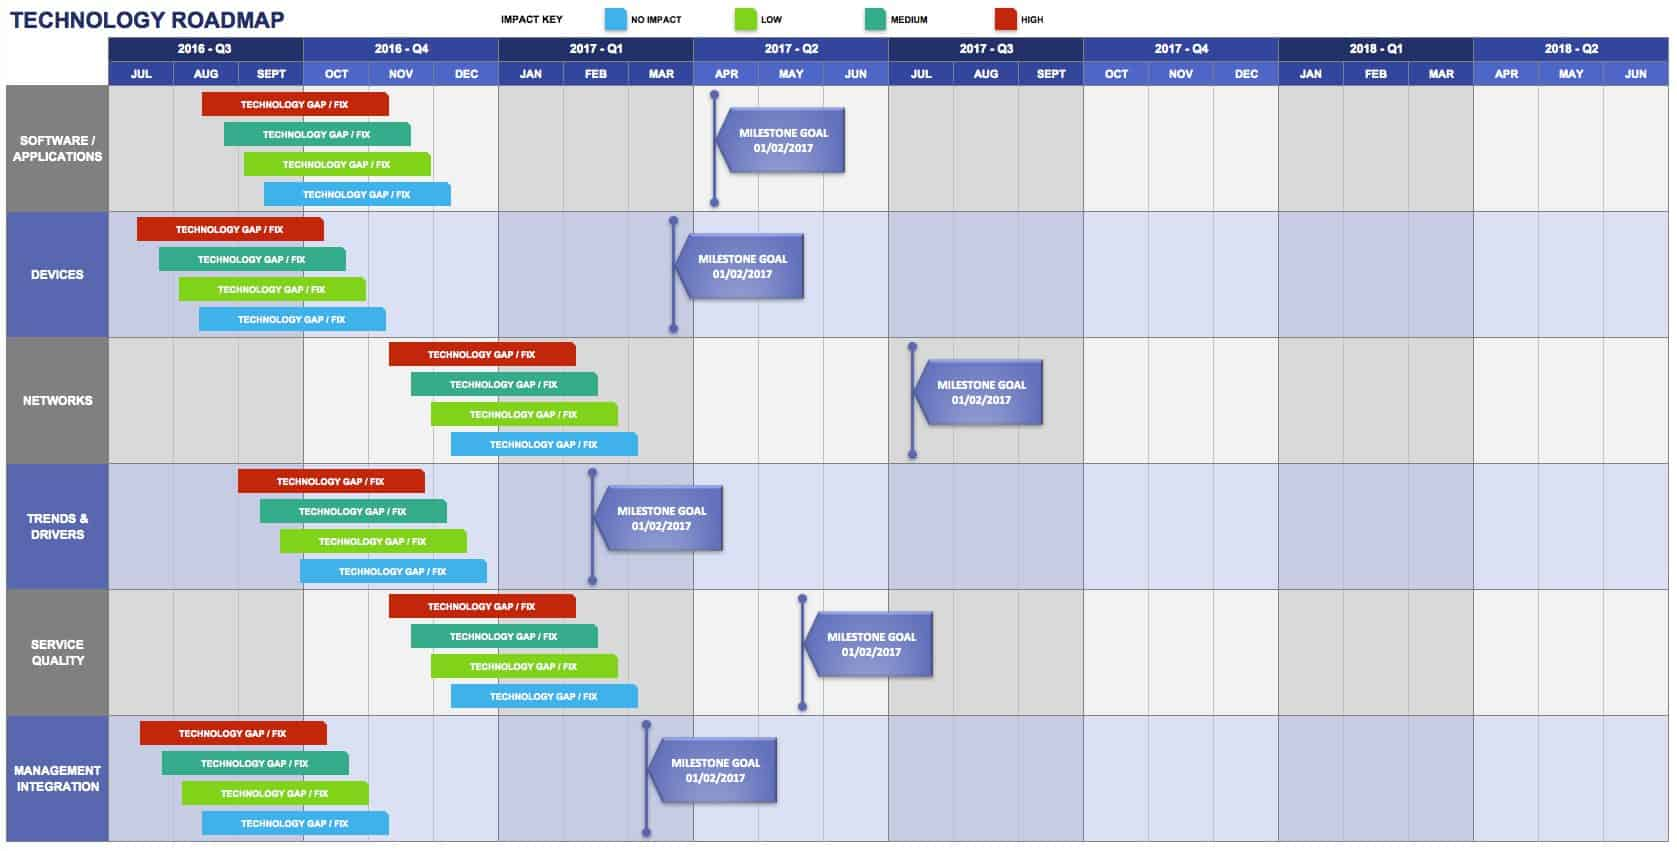 Free Product Roadmap Templates Smartsheet - It roadmap template visio